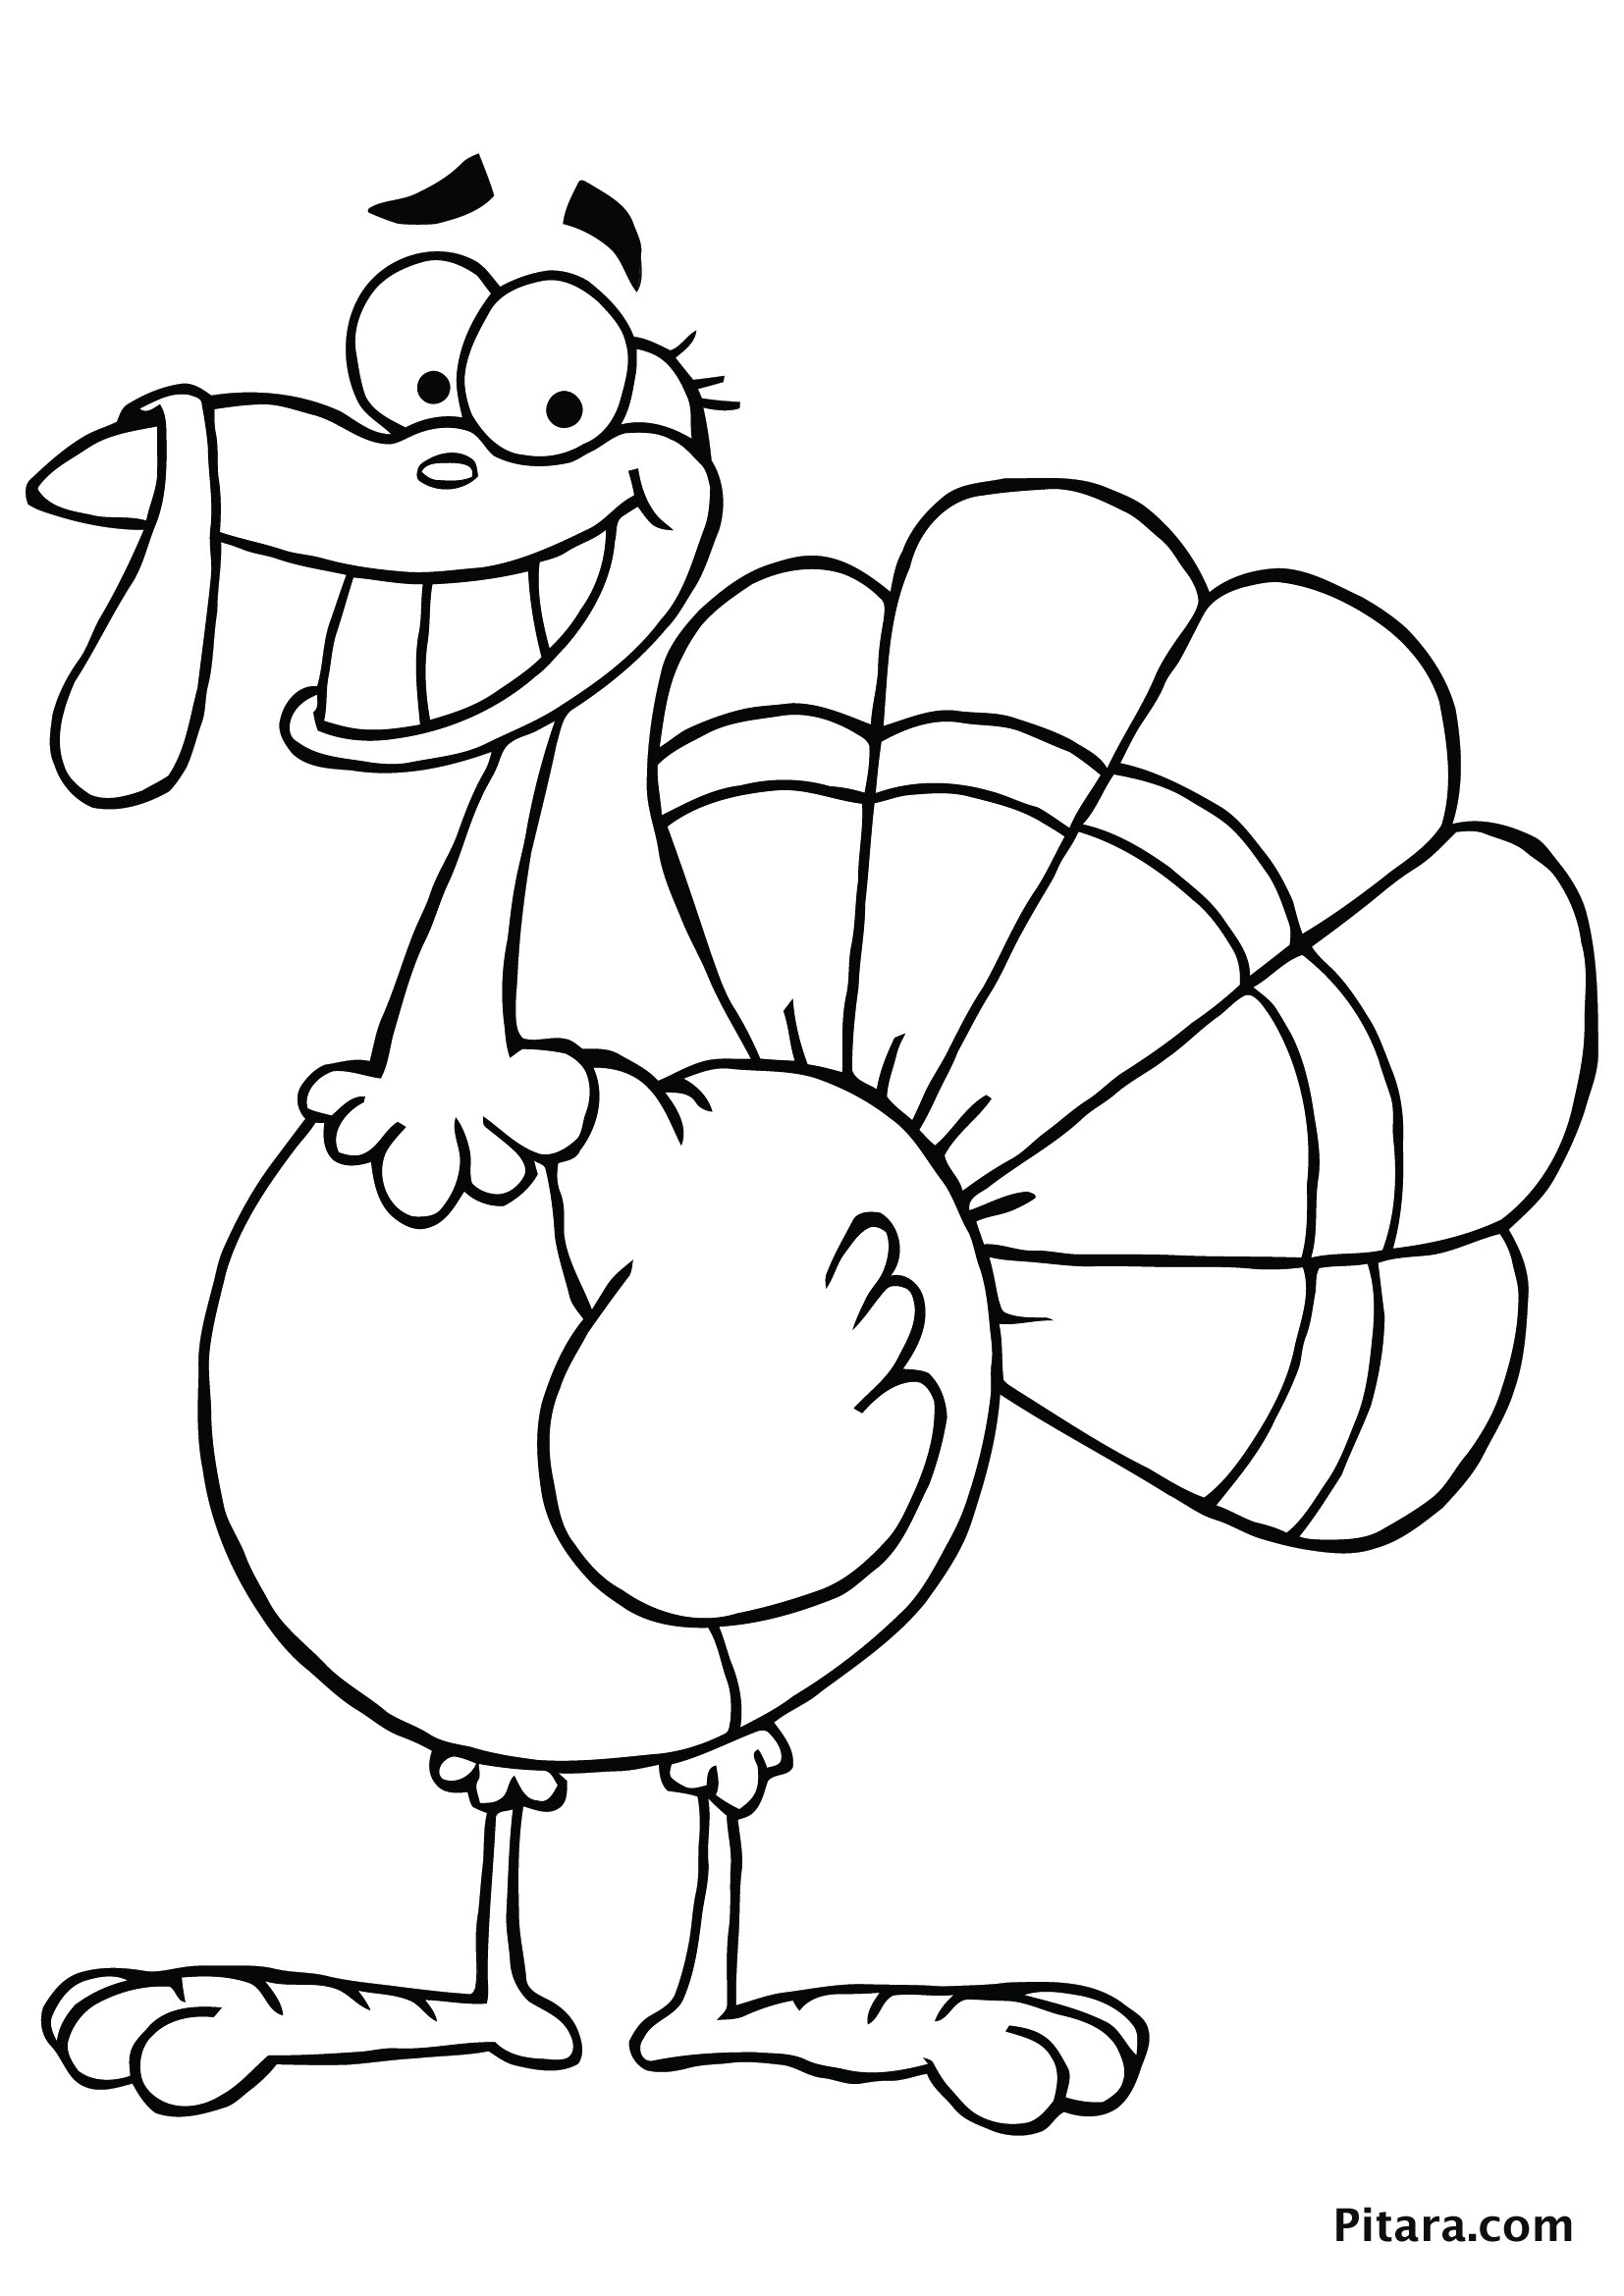 Kids Coloring Sheet  Turkey Coloring Pages for Kids